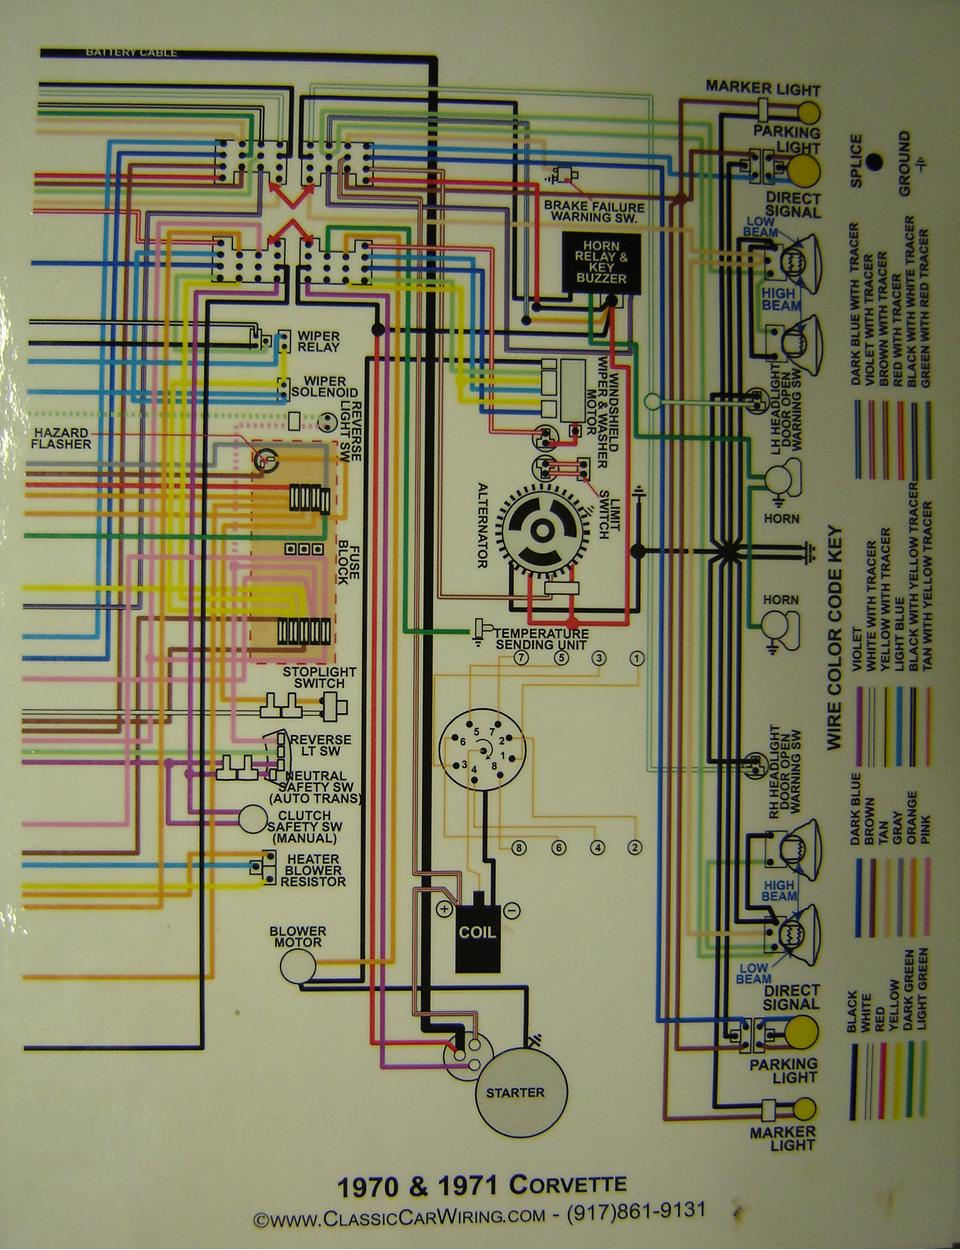 1970 71 corvette color wiring diagram B 1984 corvette wiring diagram free 1986 corvette wiring diagrams  at mifinder.co